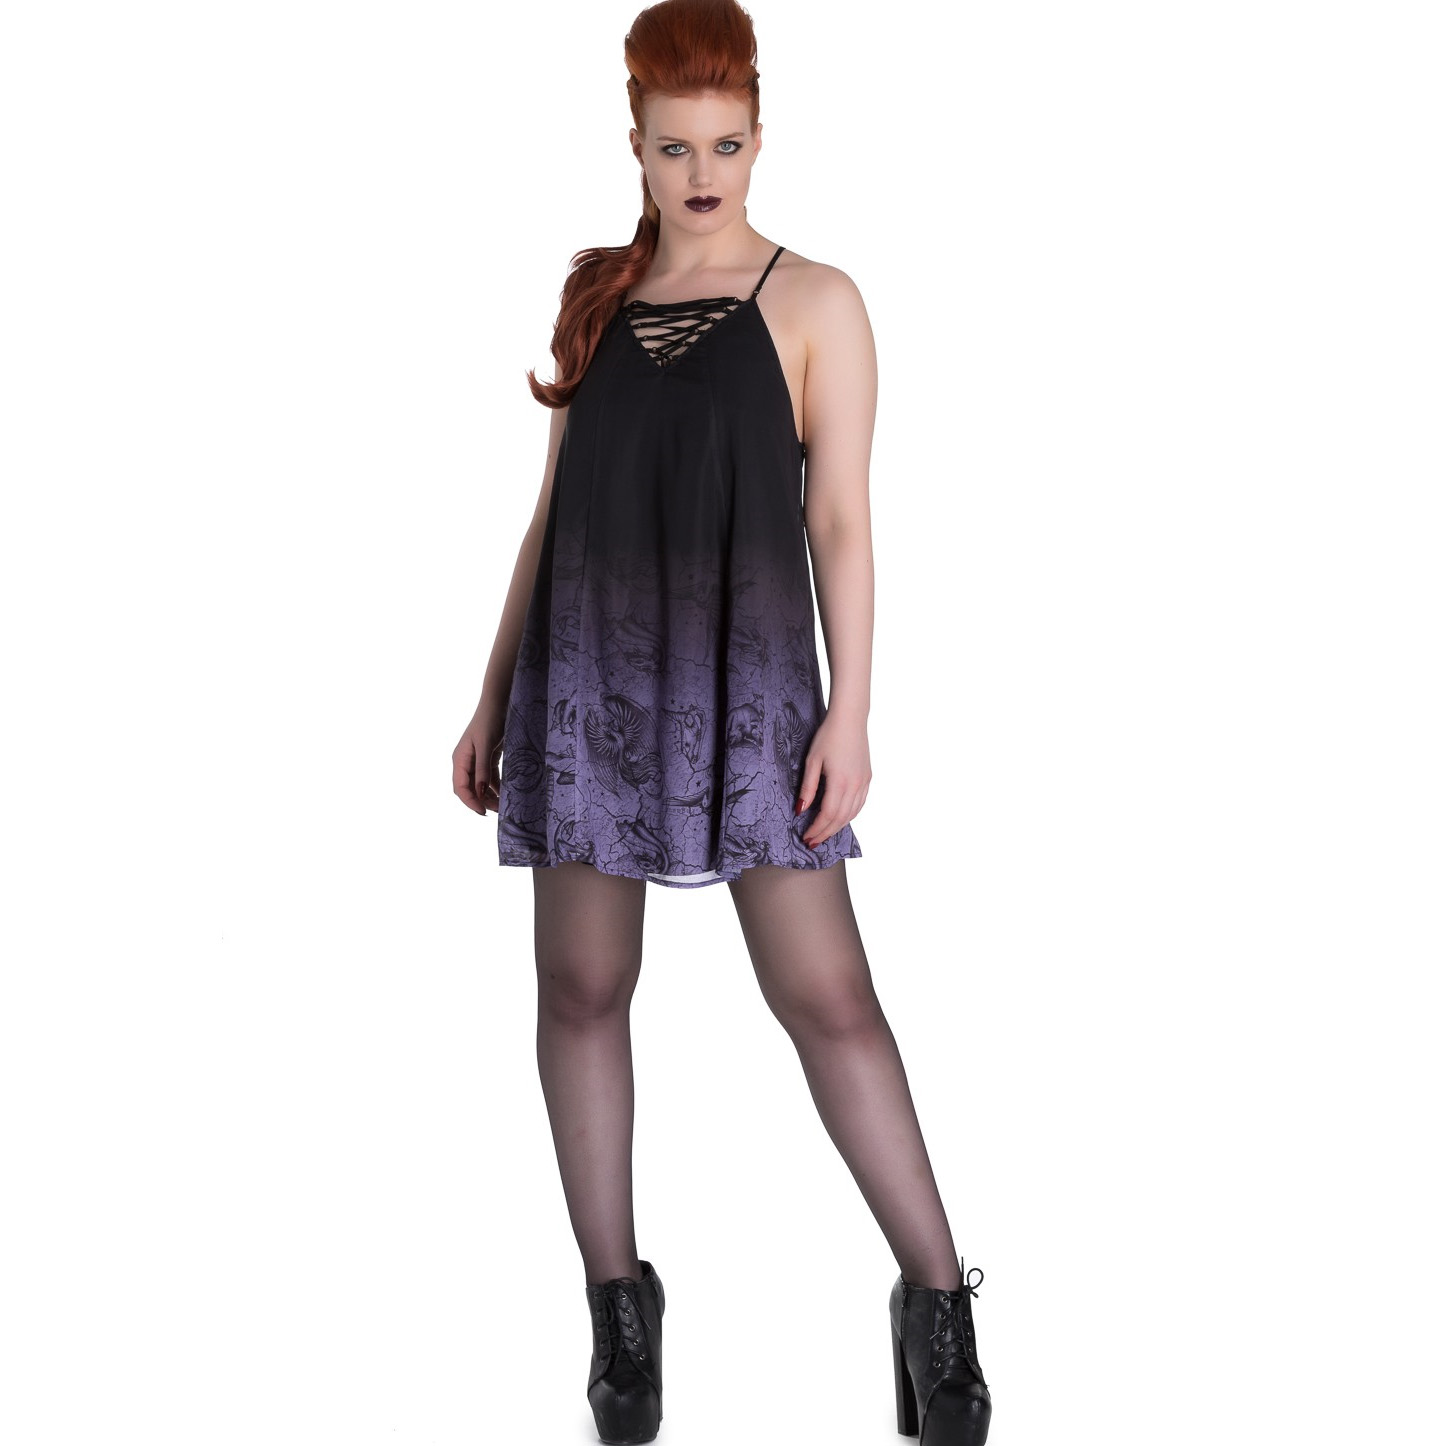 Hell-Bunny-Spin-Doctor-Goth-Lace-Up-Mini-Dress-EVADINE-Purple-Black-All-Sizes thumbnail 11